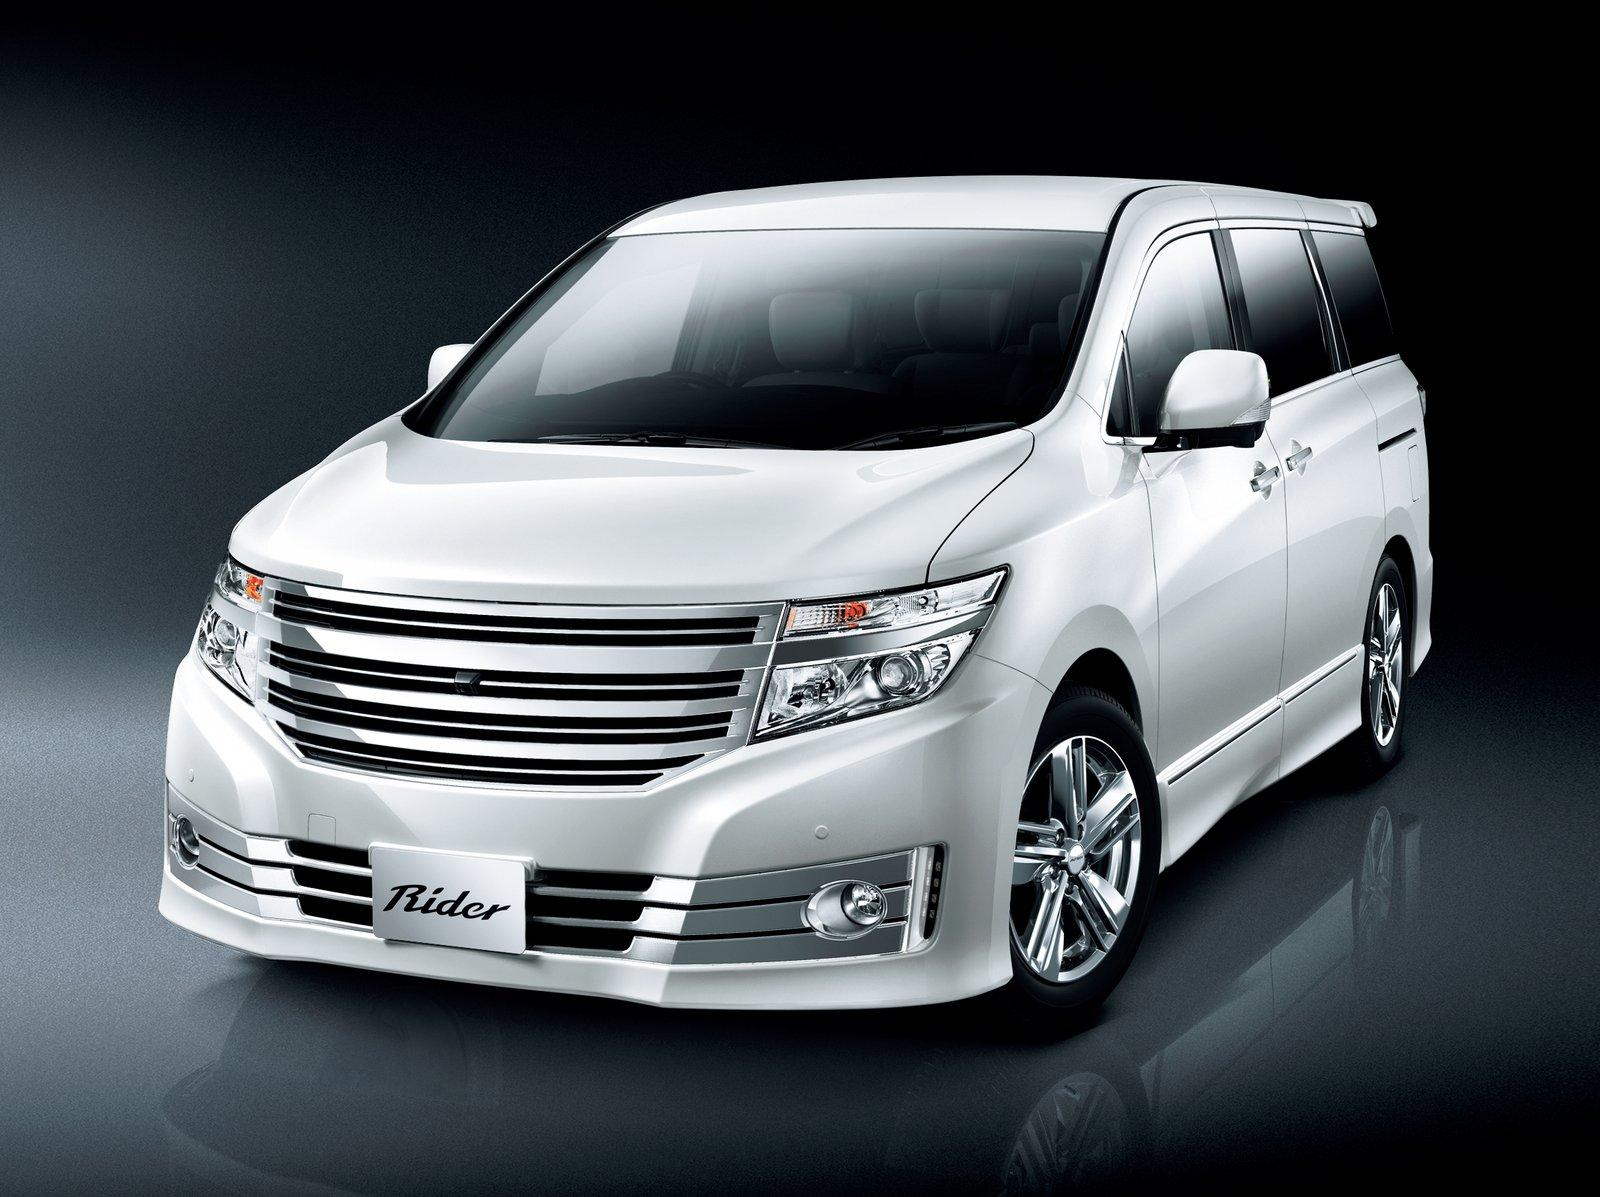 nissan elgrand pictures #6